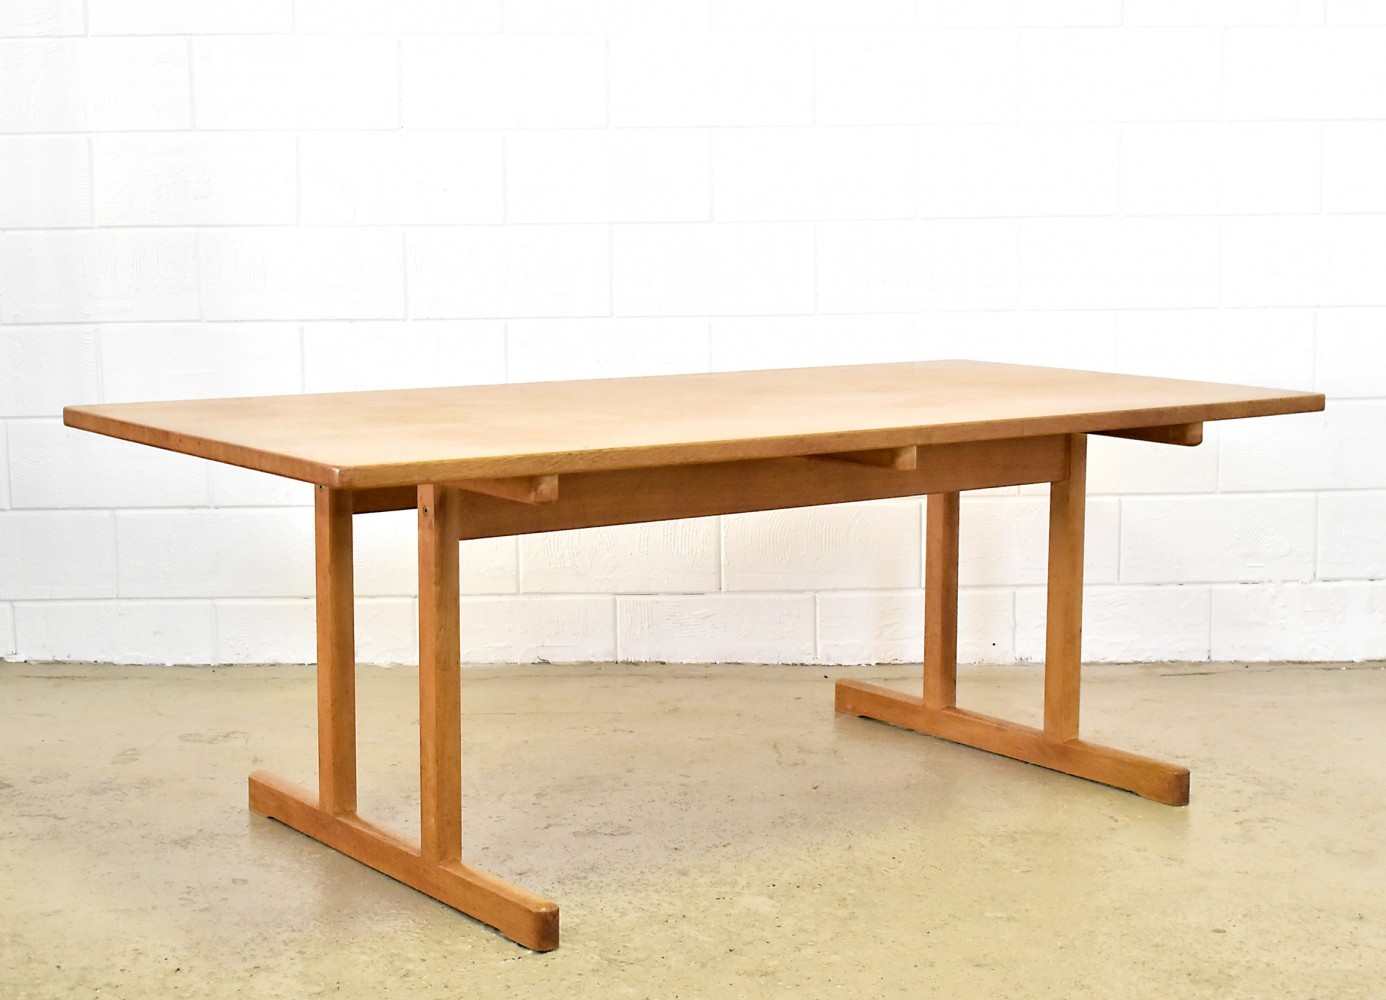 Shaker 6286 dining table by Børge Mogensen for Fredericia, 1970s